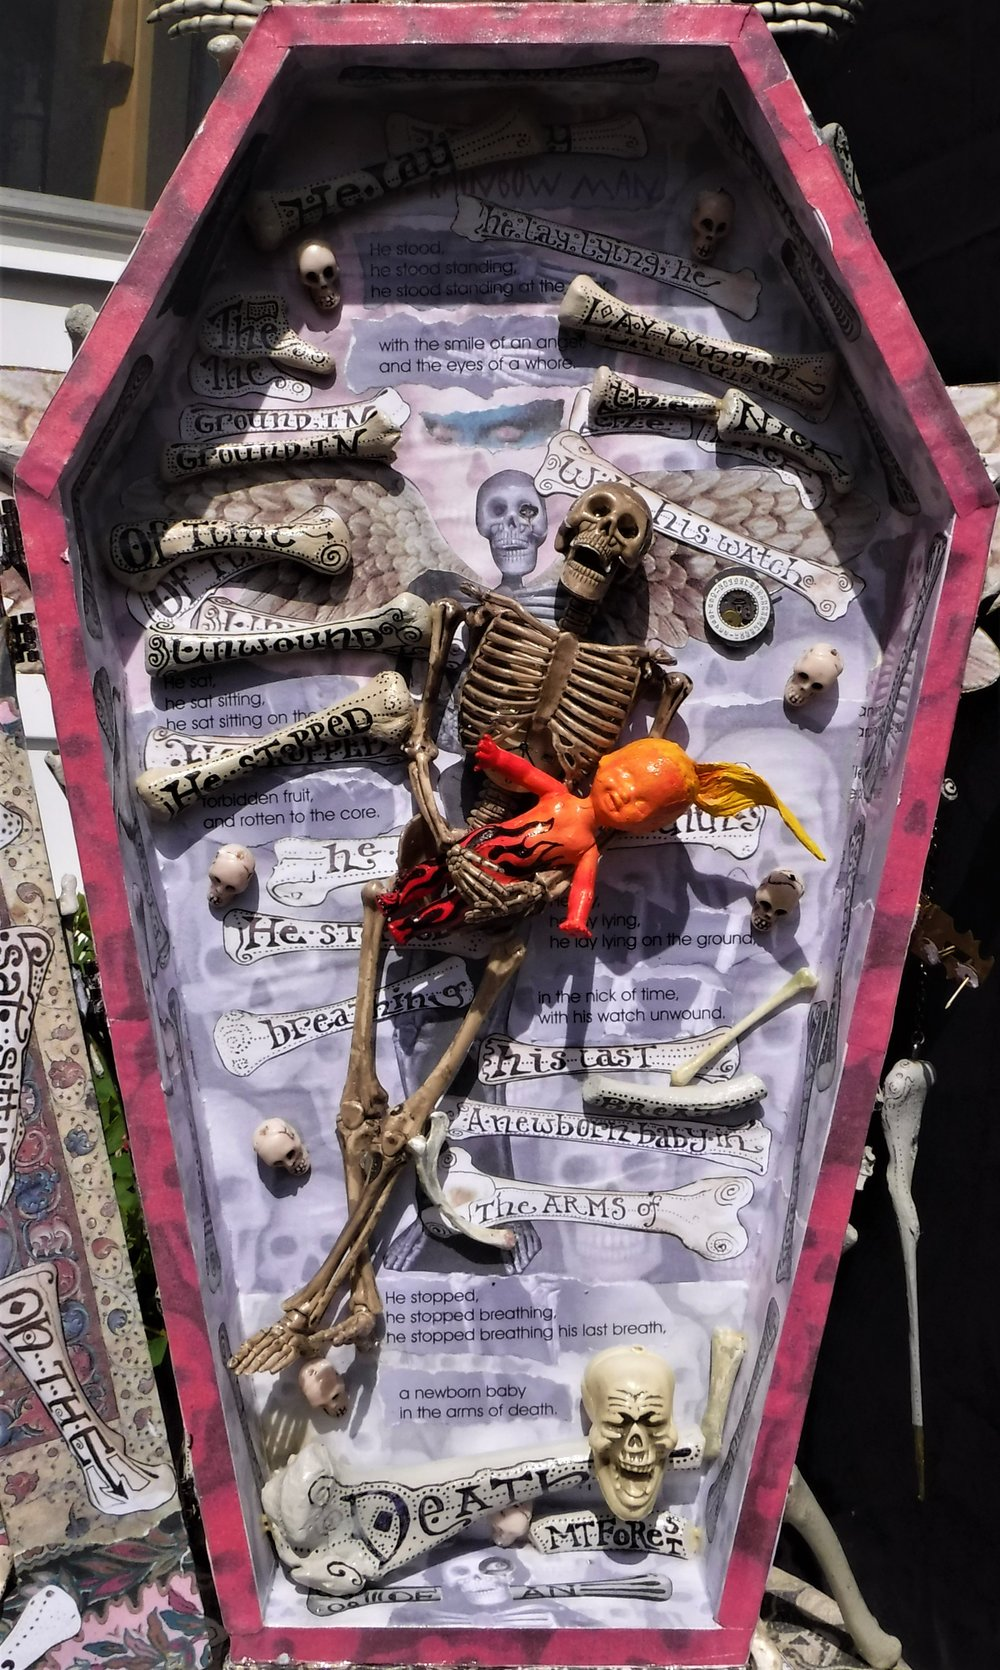 """the rainbow man"" - interior, plastic dollar store skeleton, doll, acrylic paint, chicken bones, text."